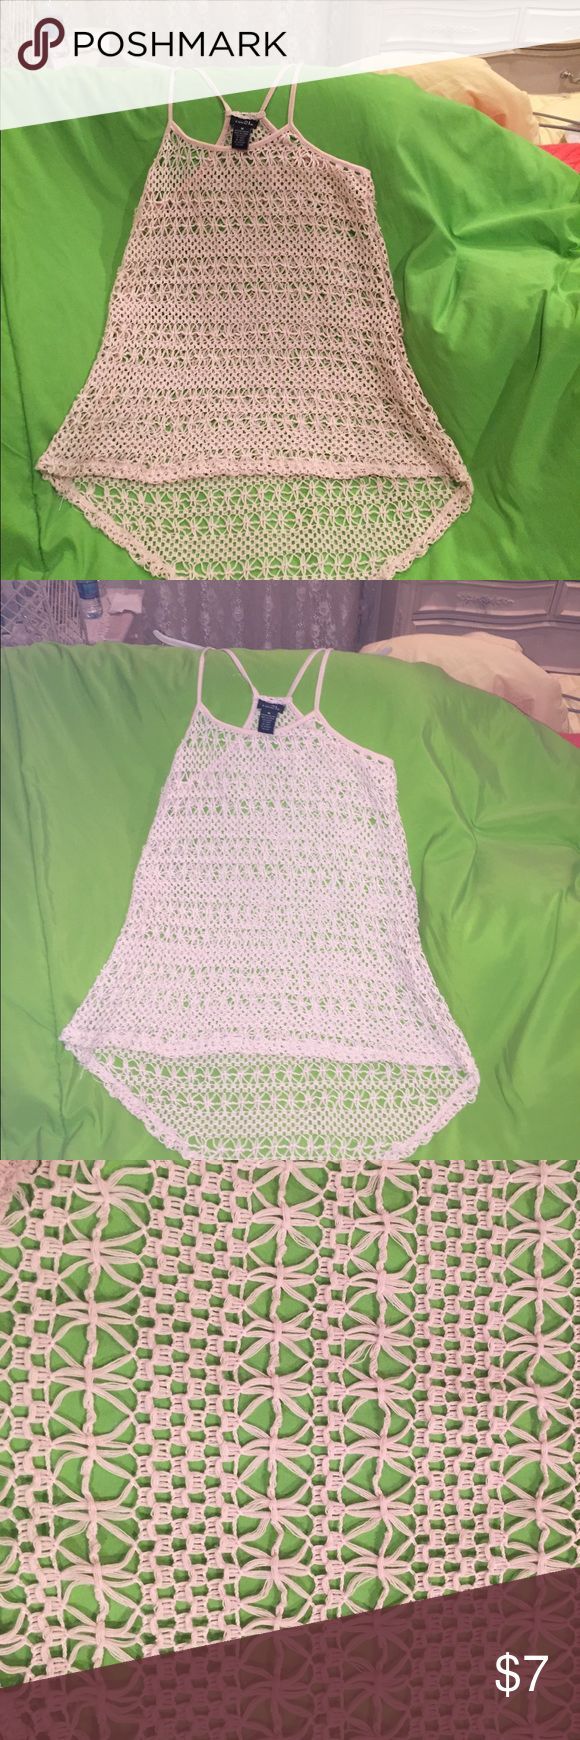 See through knitted tank top. Sz: Medium Size: Medium     Color: Off White / Beige             Brand: Rue 21              Details: Knitted                    Great for a bathing suit cover up!! Rue 21 Tops Tank Tops